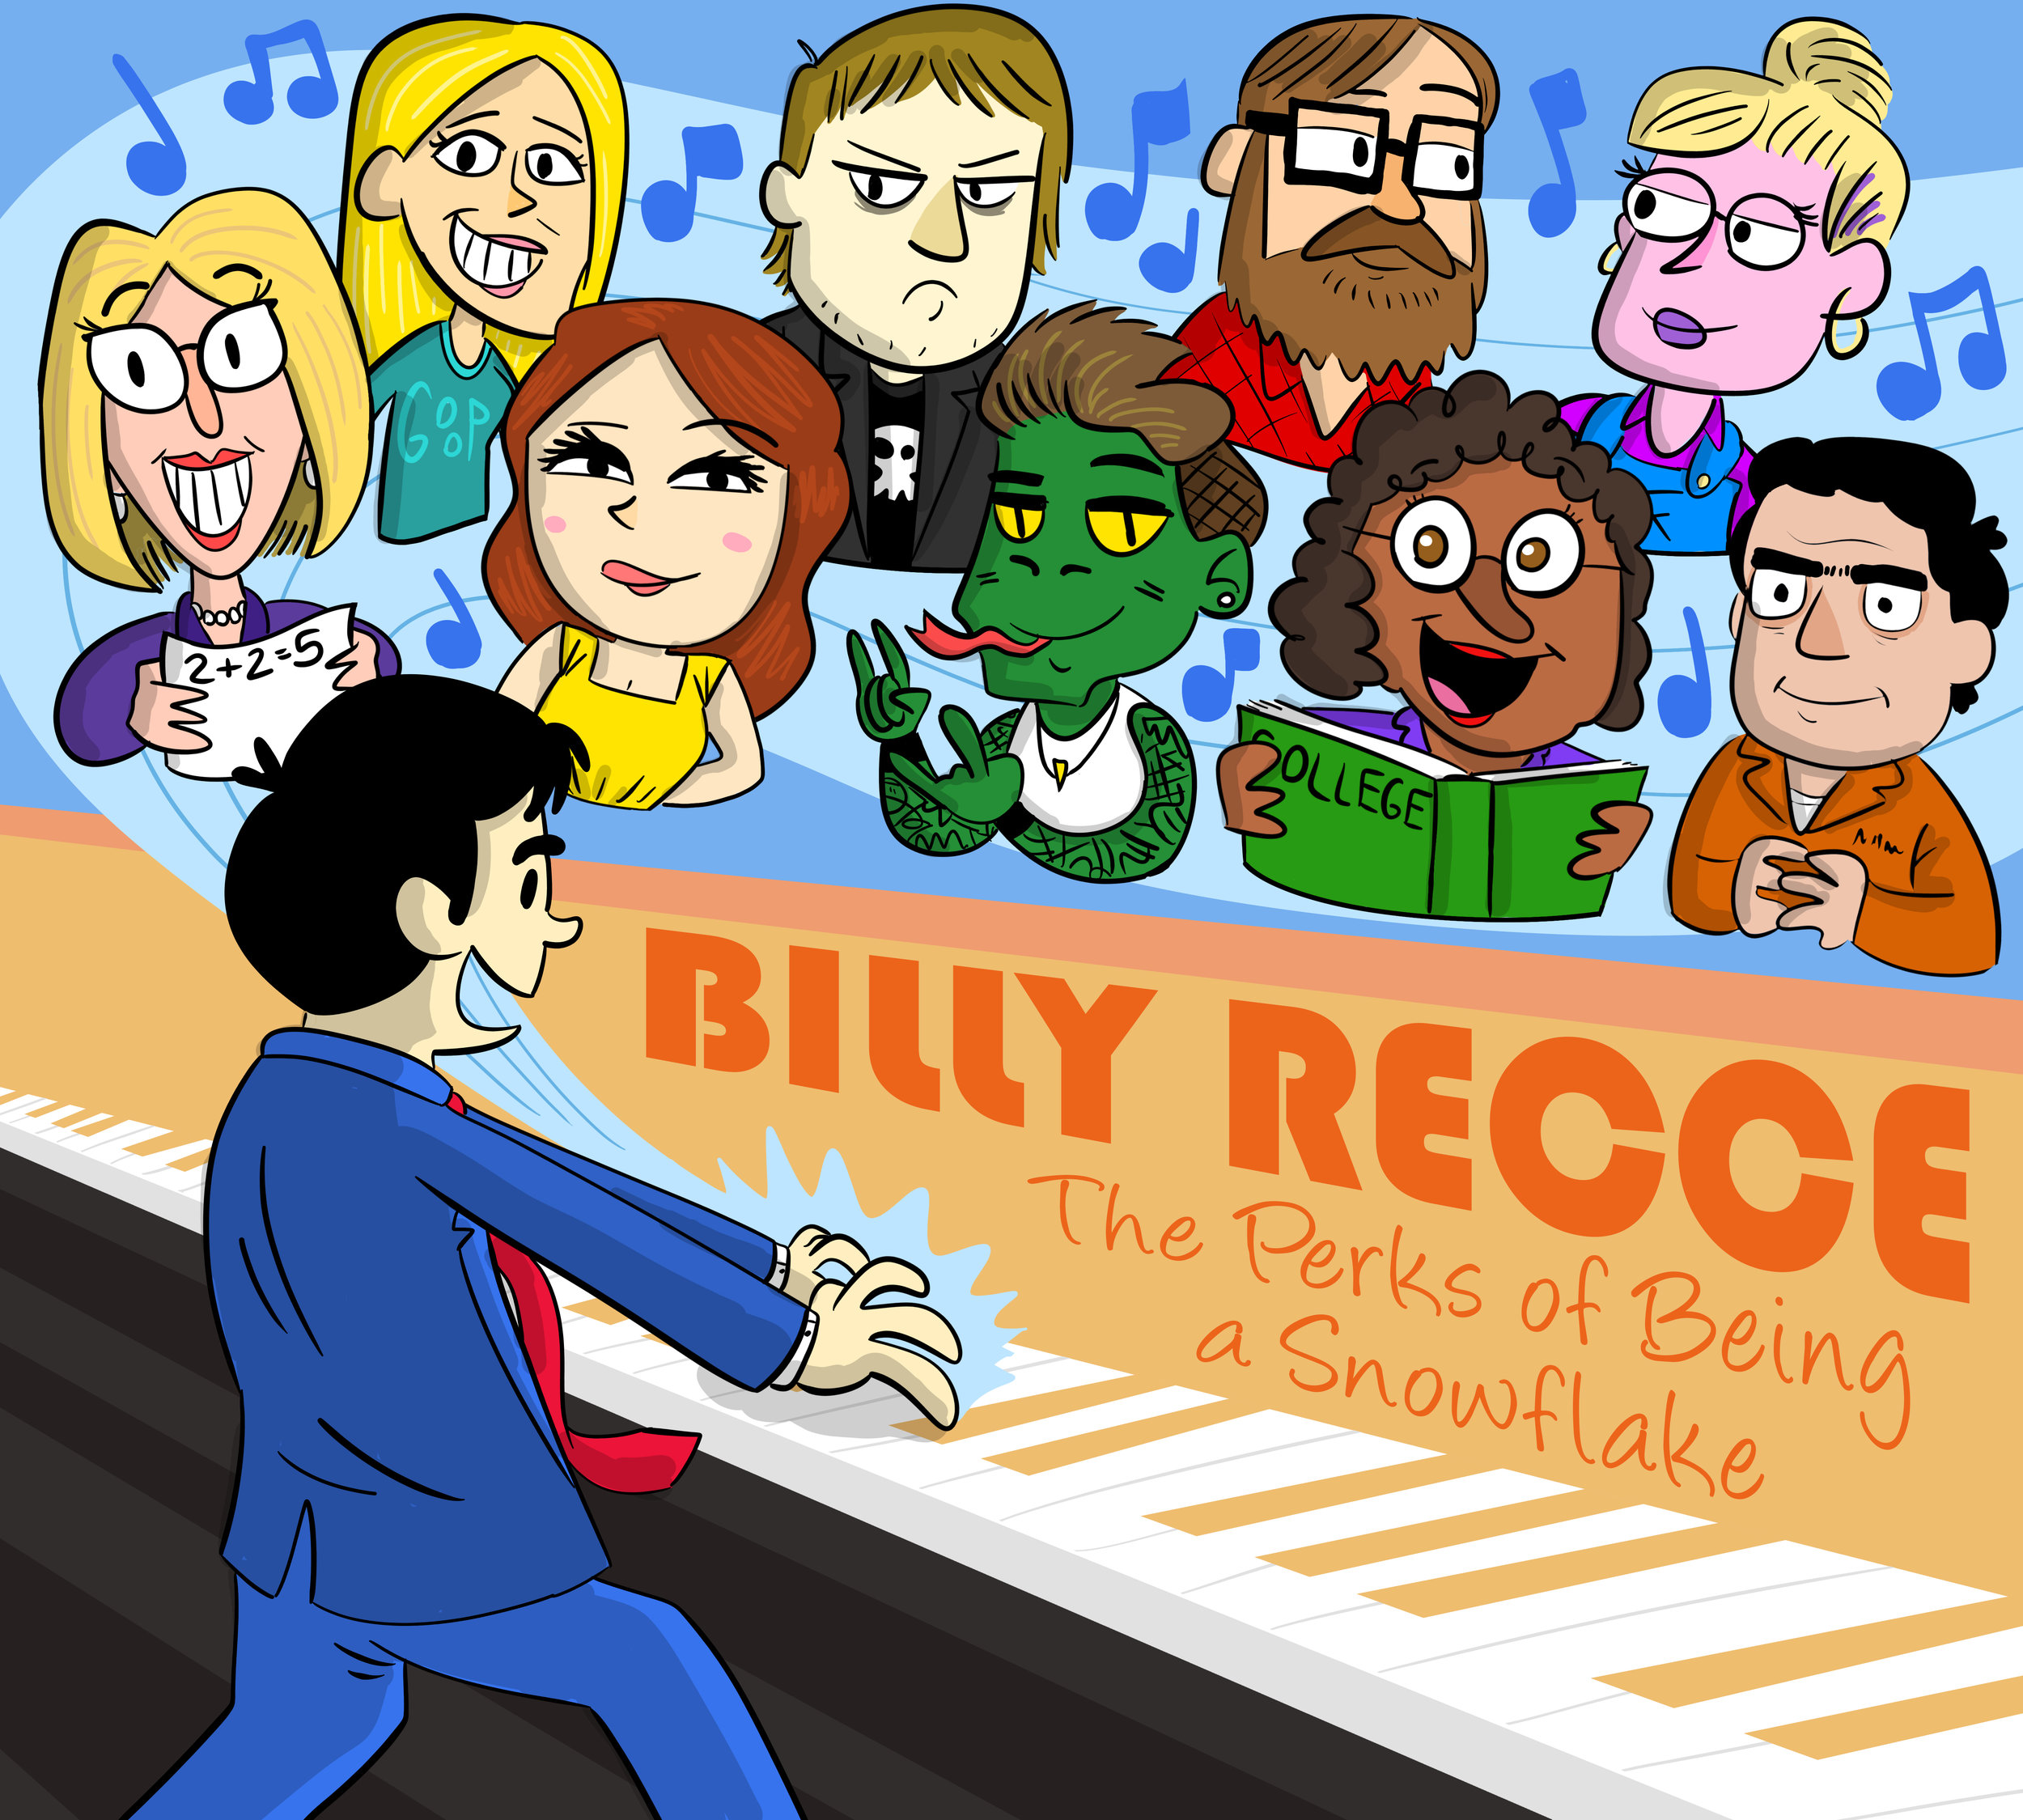 Billy Recce: The Perks of Being a Snowflake